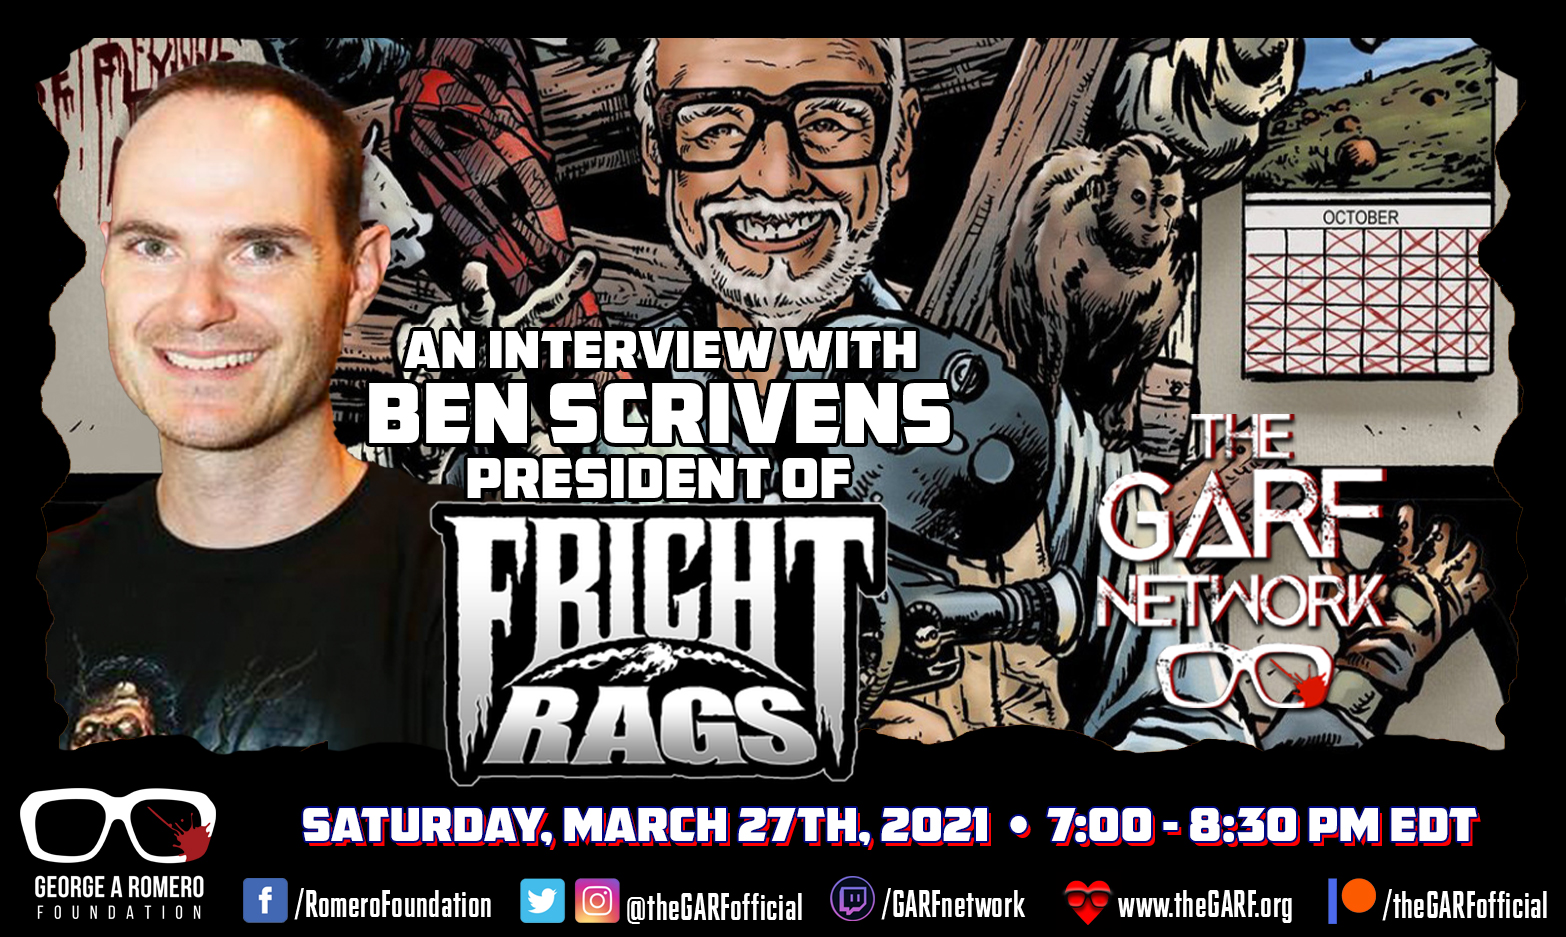 Fright-Rags-Promo